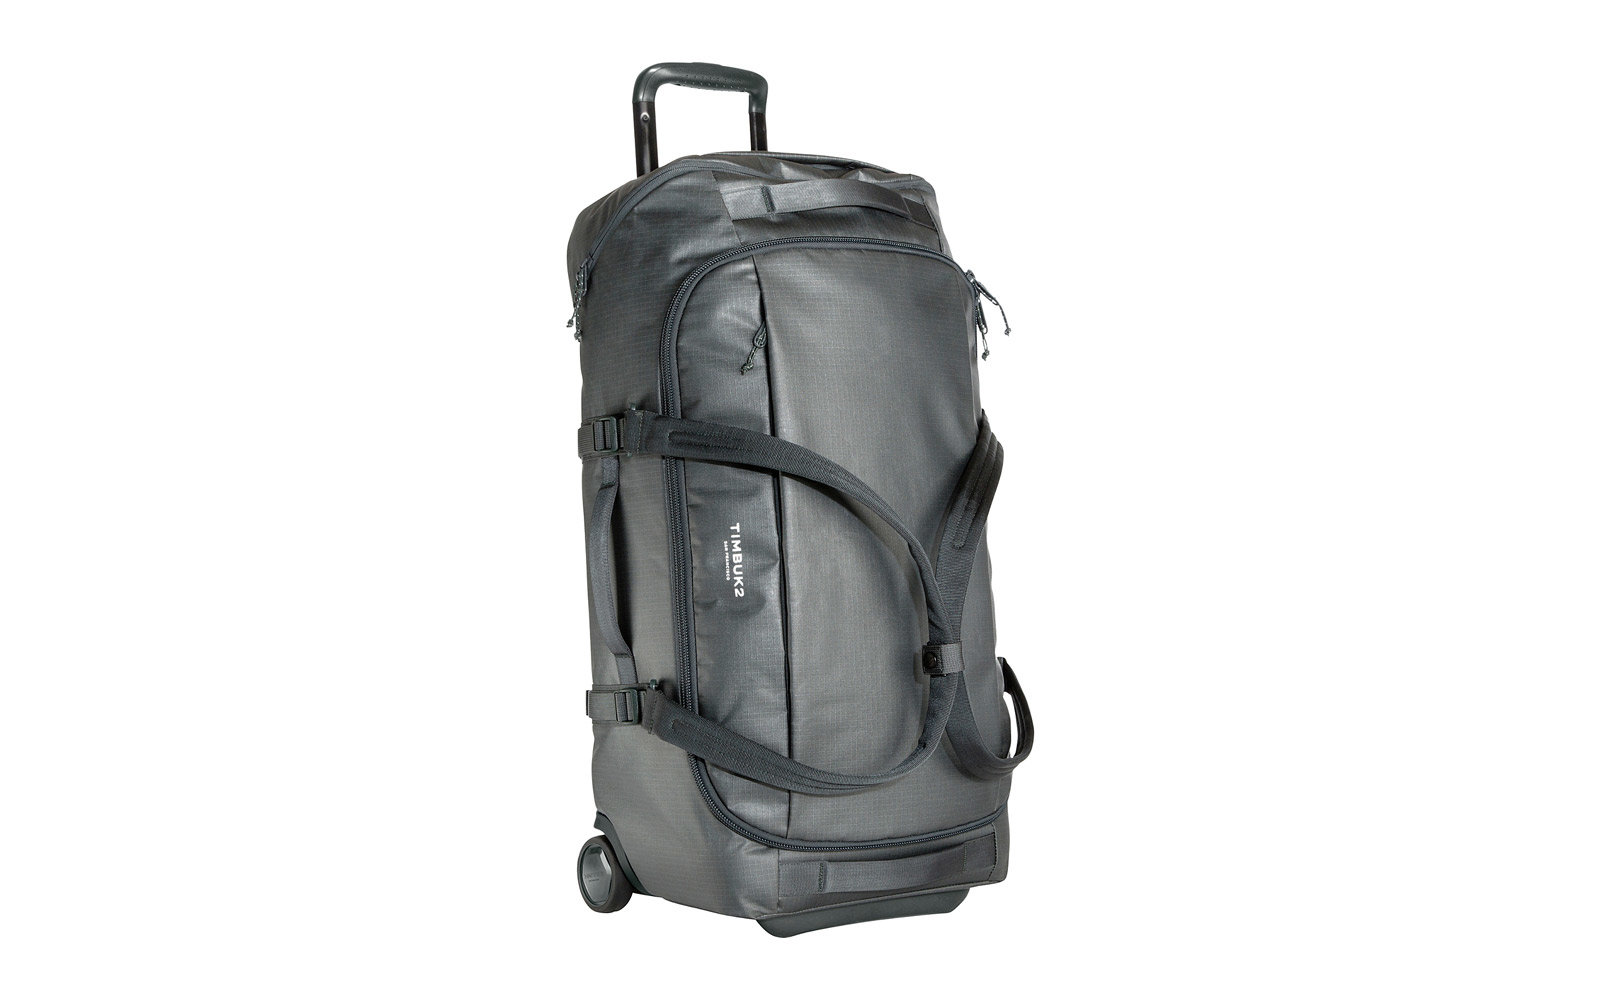 f6bdd81f00 Timbuk2 Quest Large Wheeled Duffel Bag